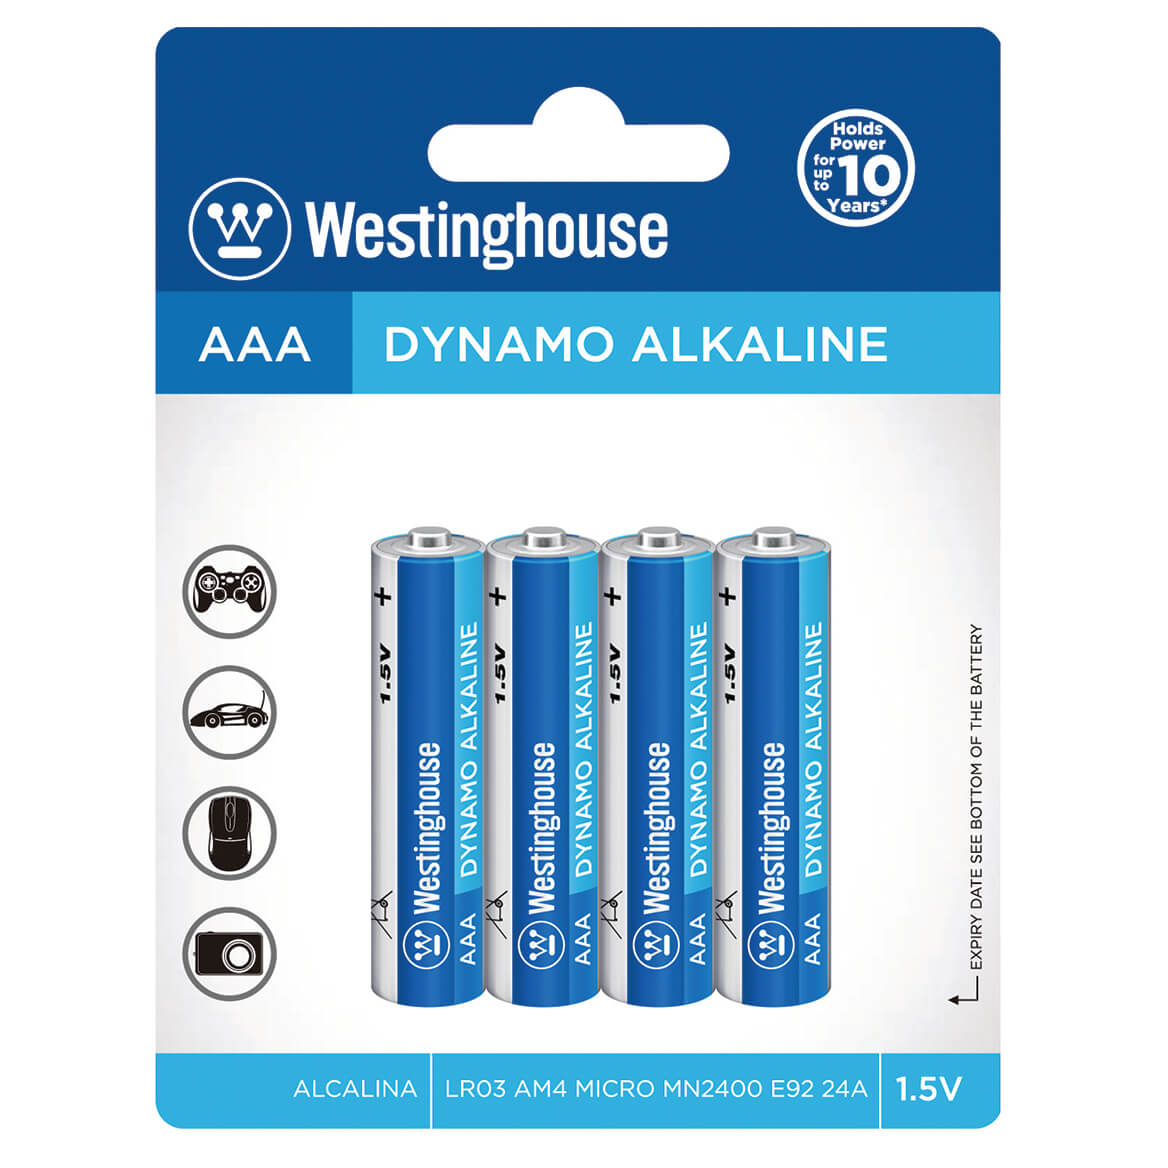 Westinghouse Batteries AAA S/4-369941